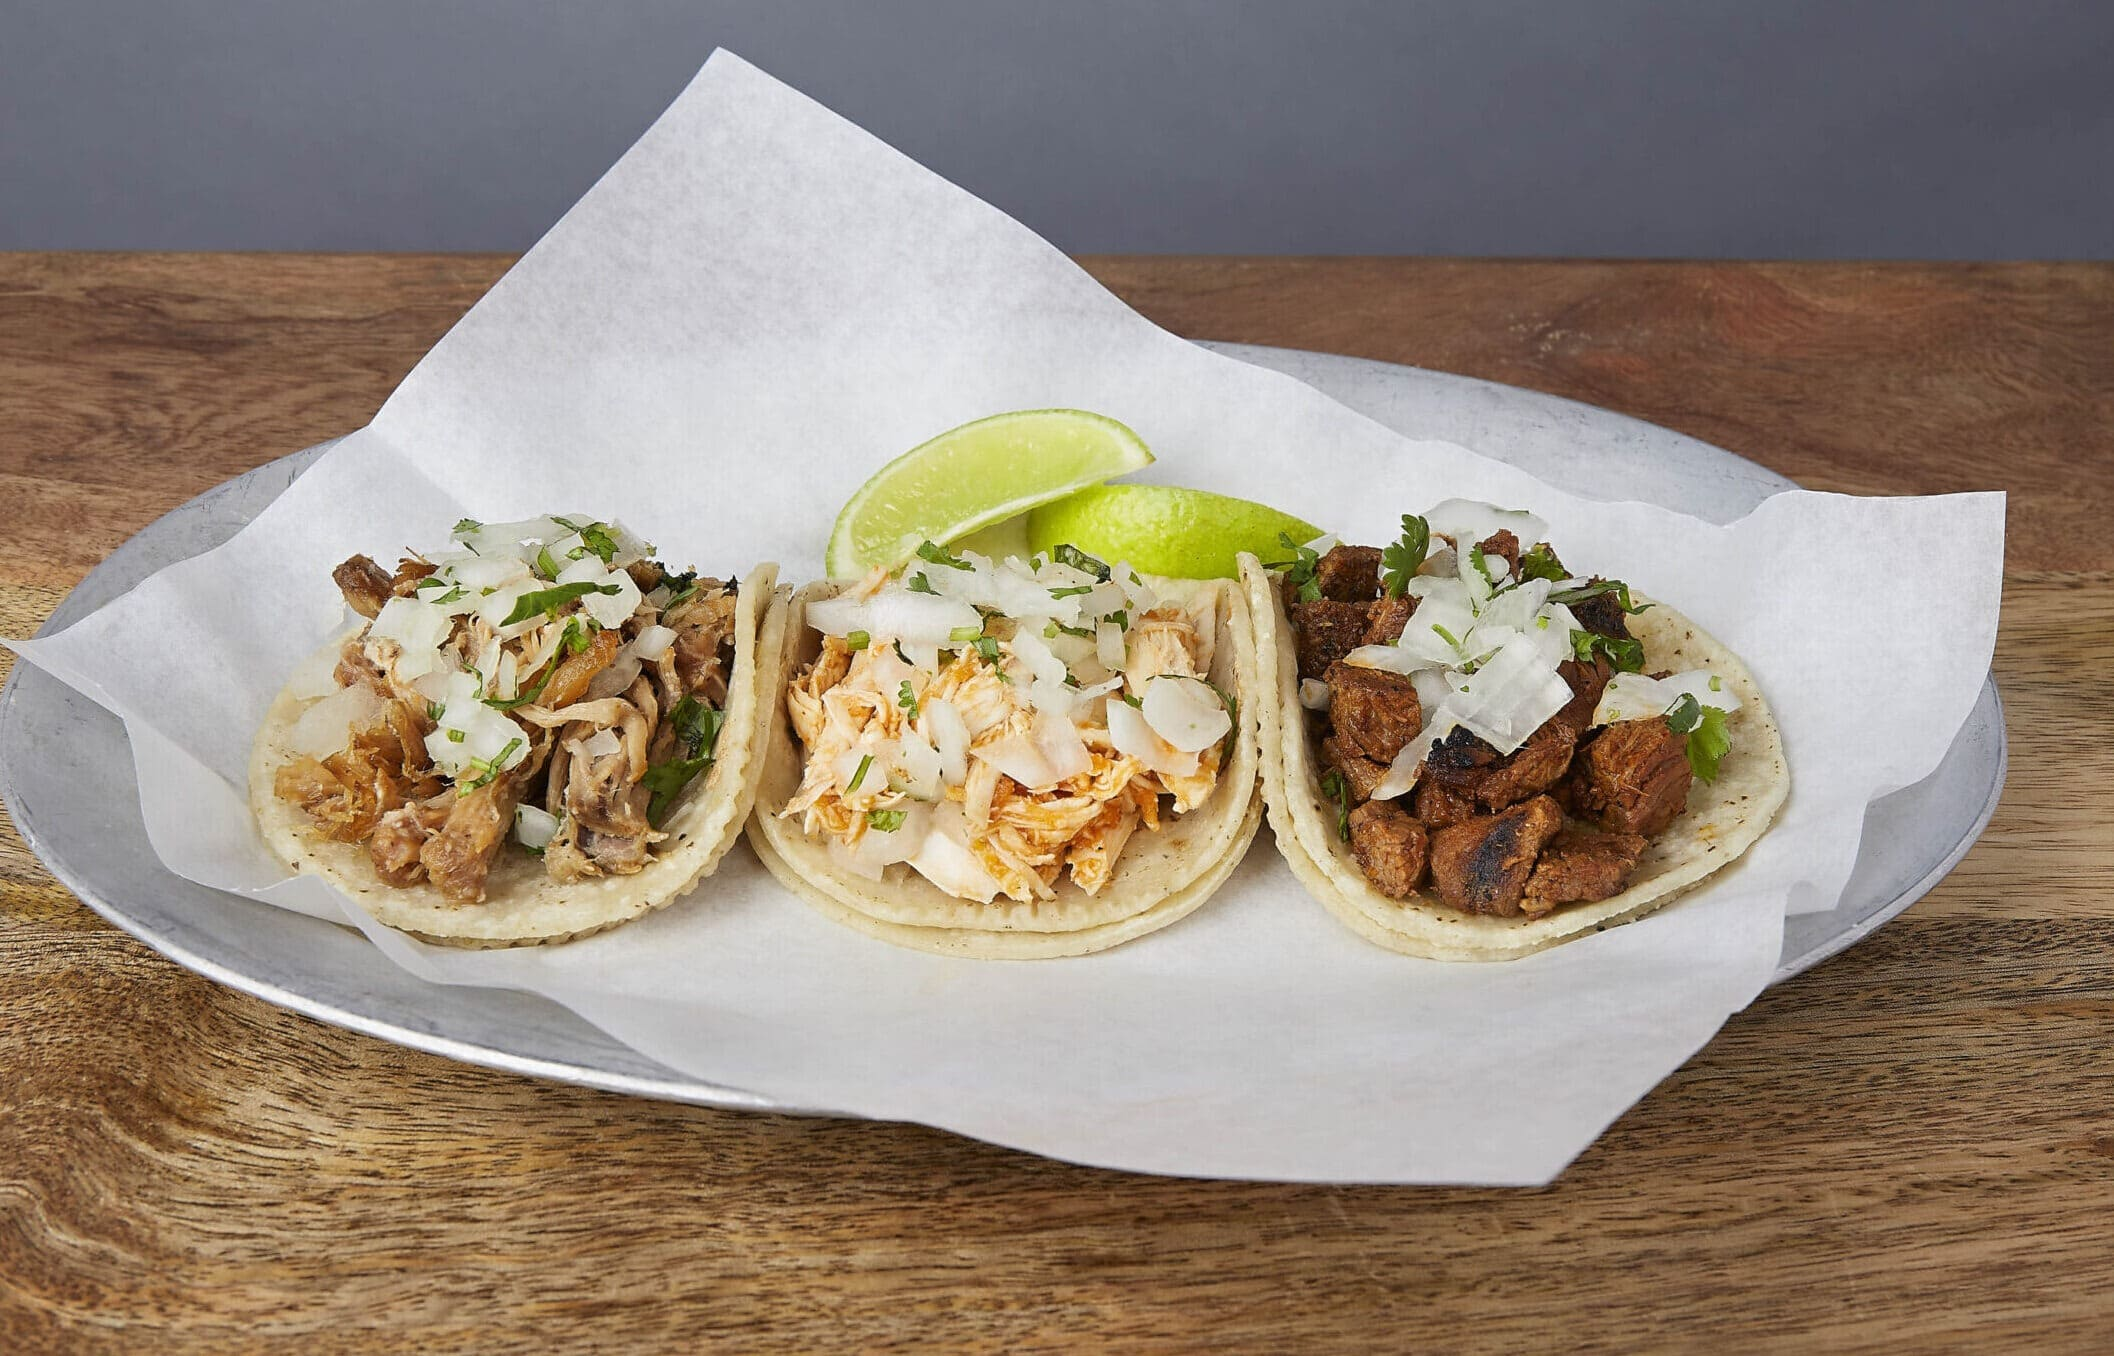 Image of three street style tacos